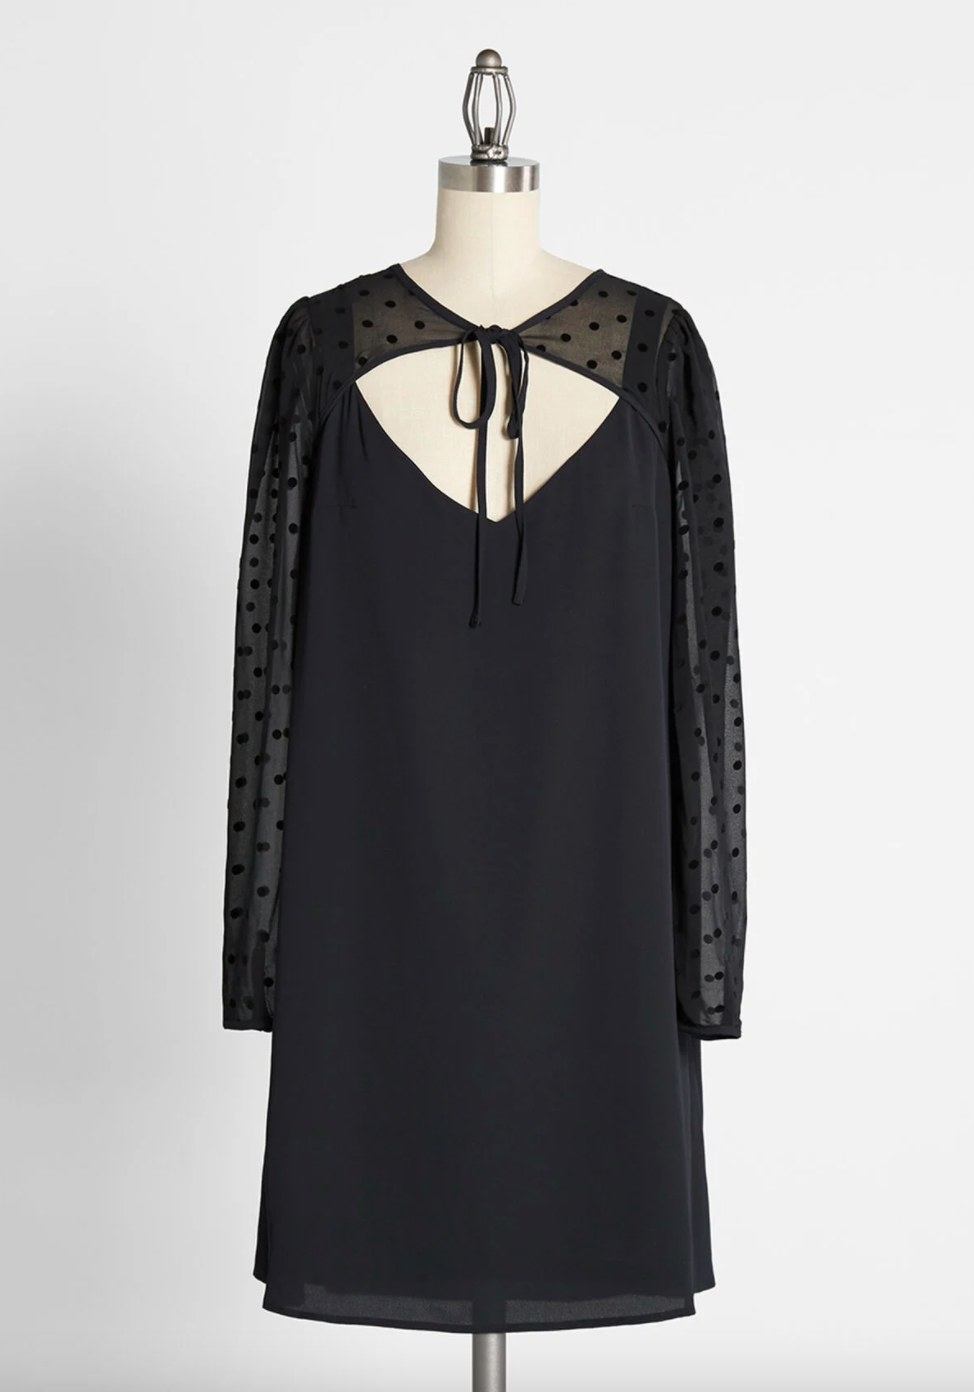 The shift dress in black with a front tie and sheer dotted sleeves